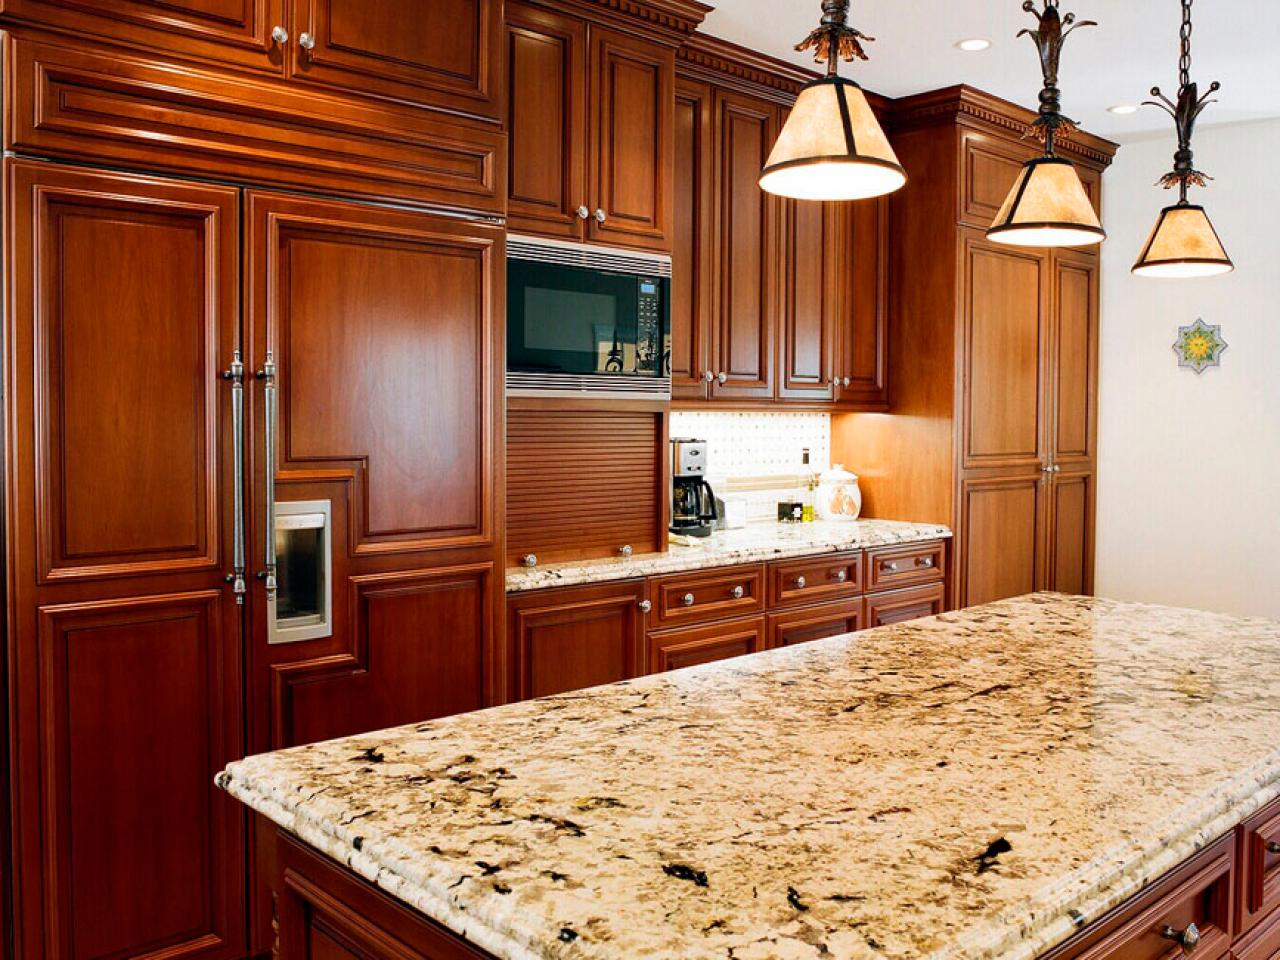 Kitchen Renovation Kitchen Remodeling Where To Splurge Where To Save Hgtv